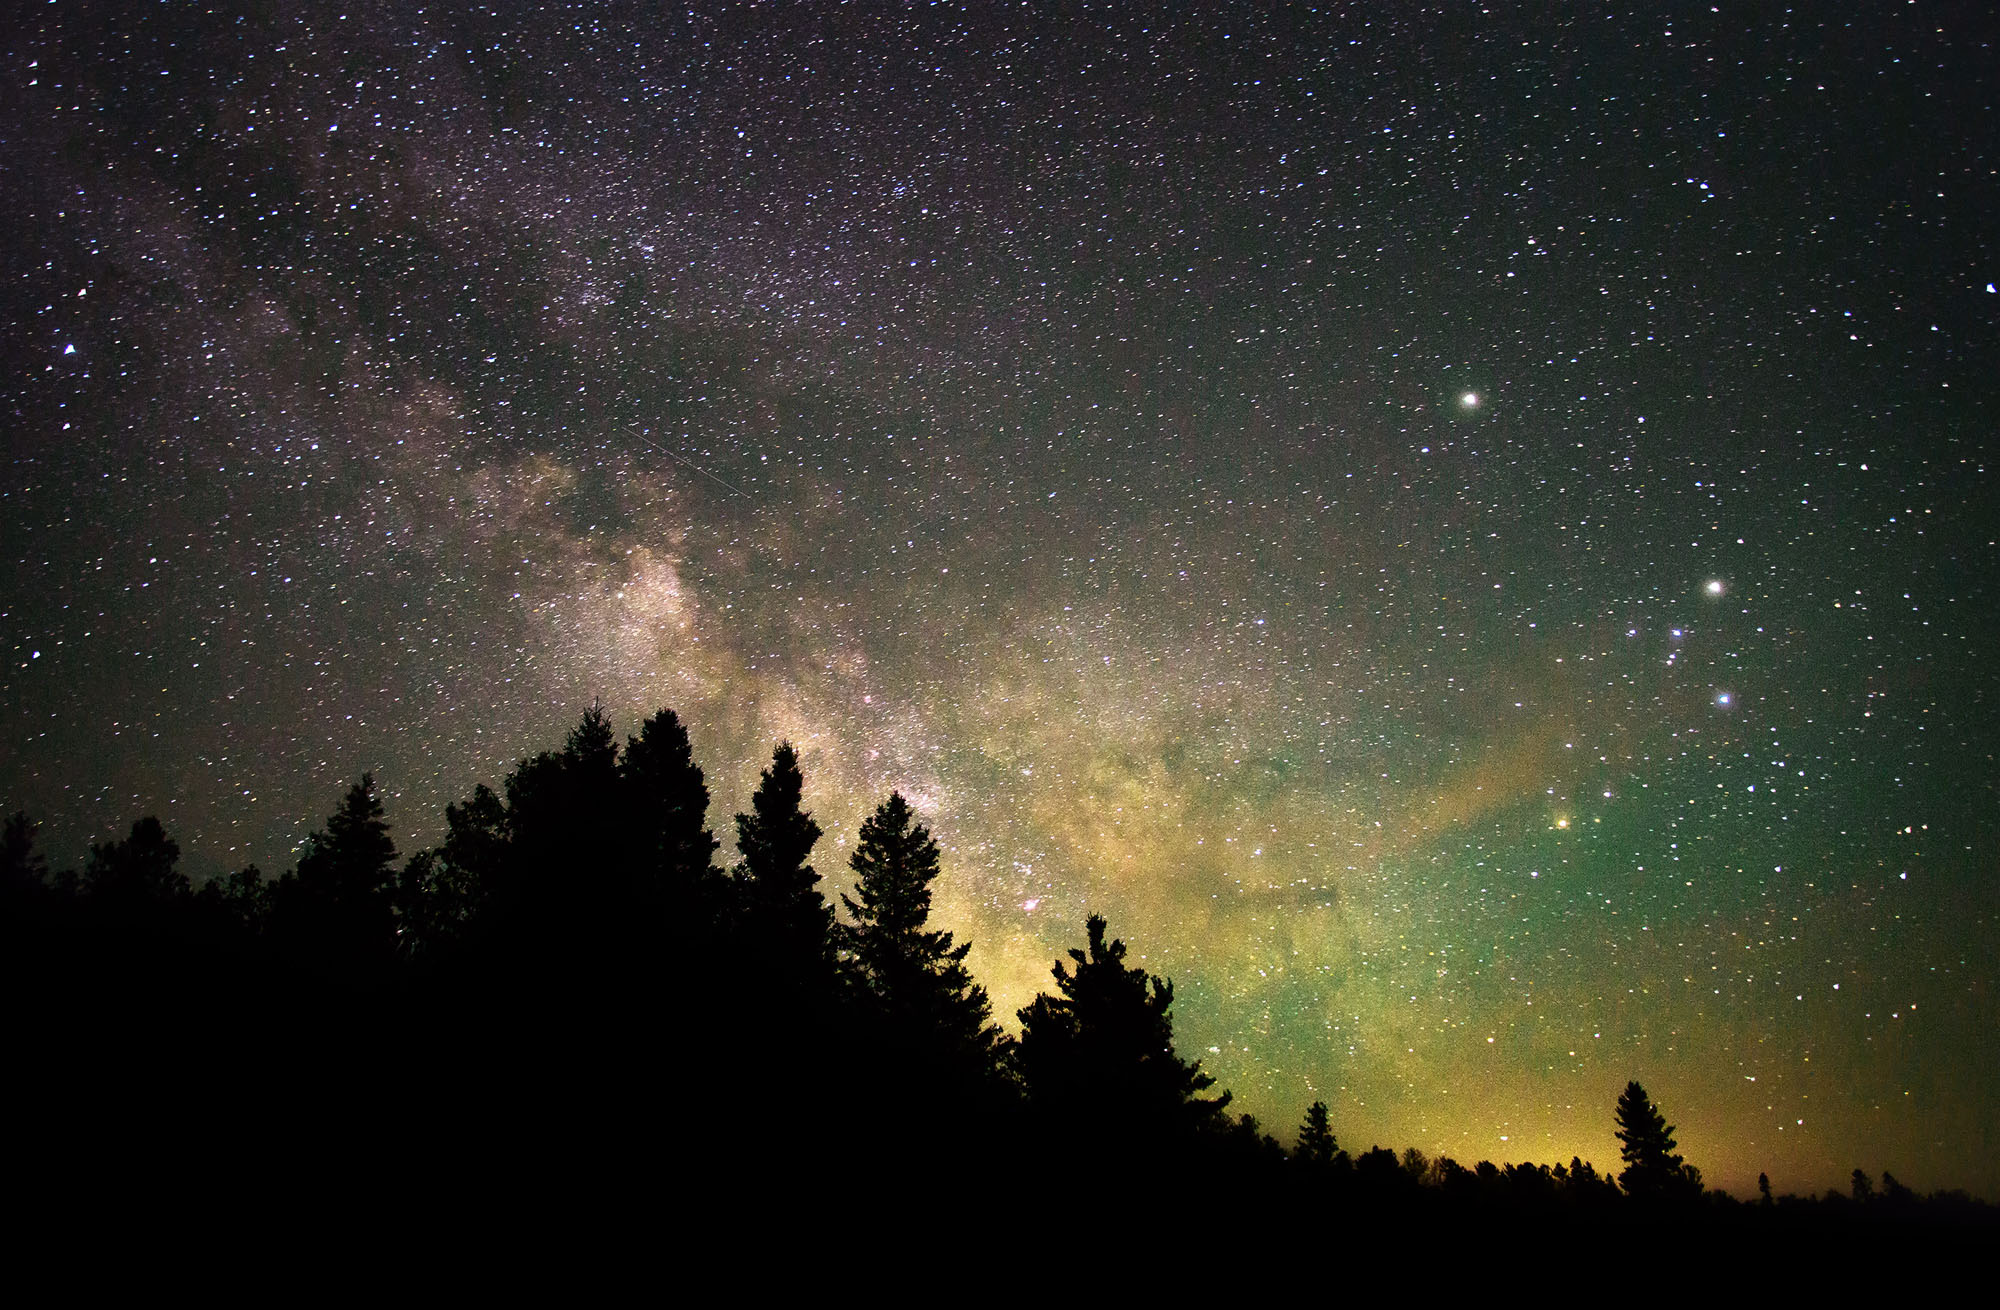 Milkyway at Lone Pine - Space Imagery